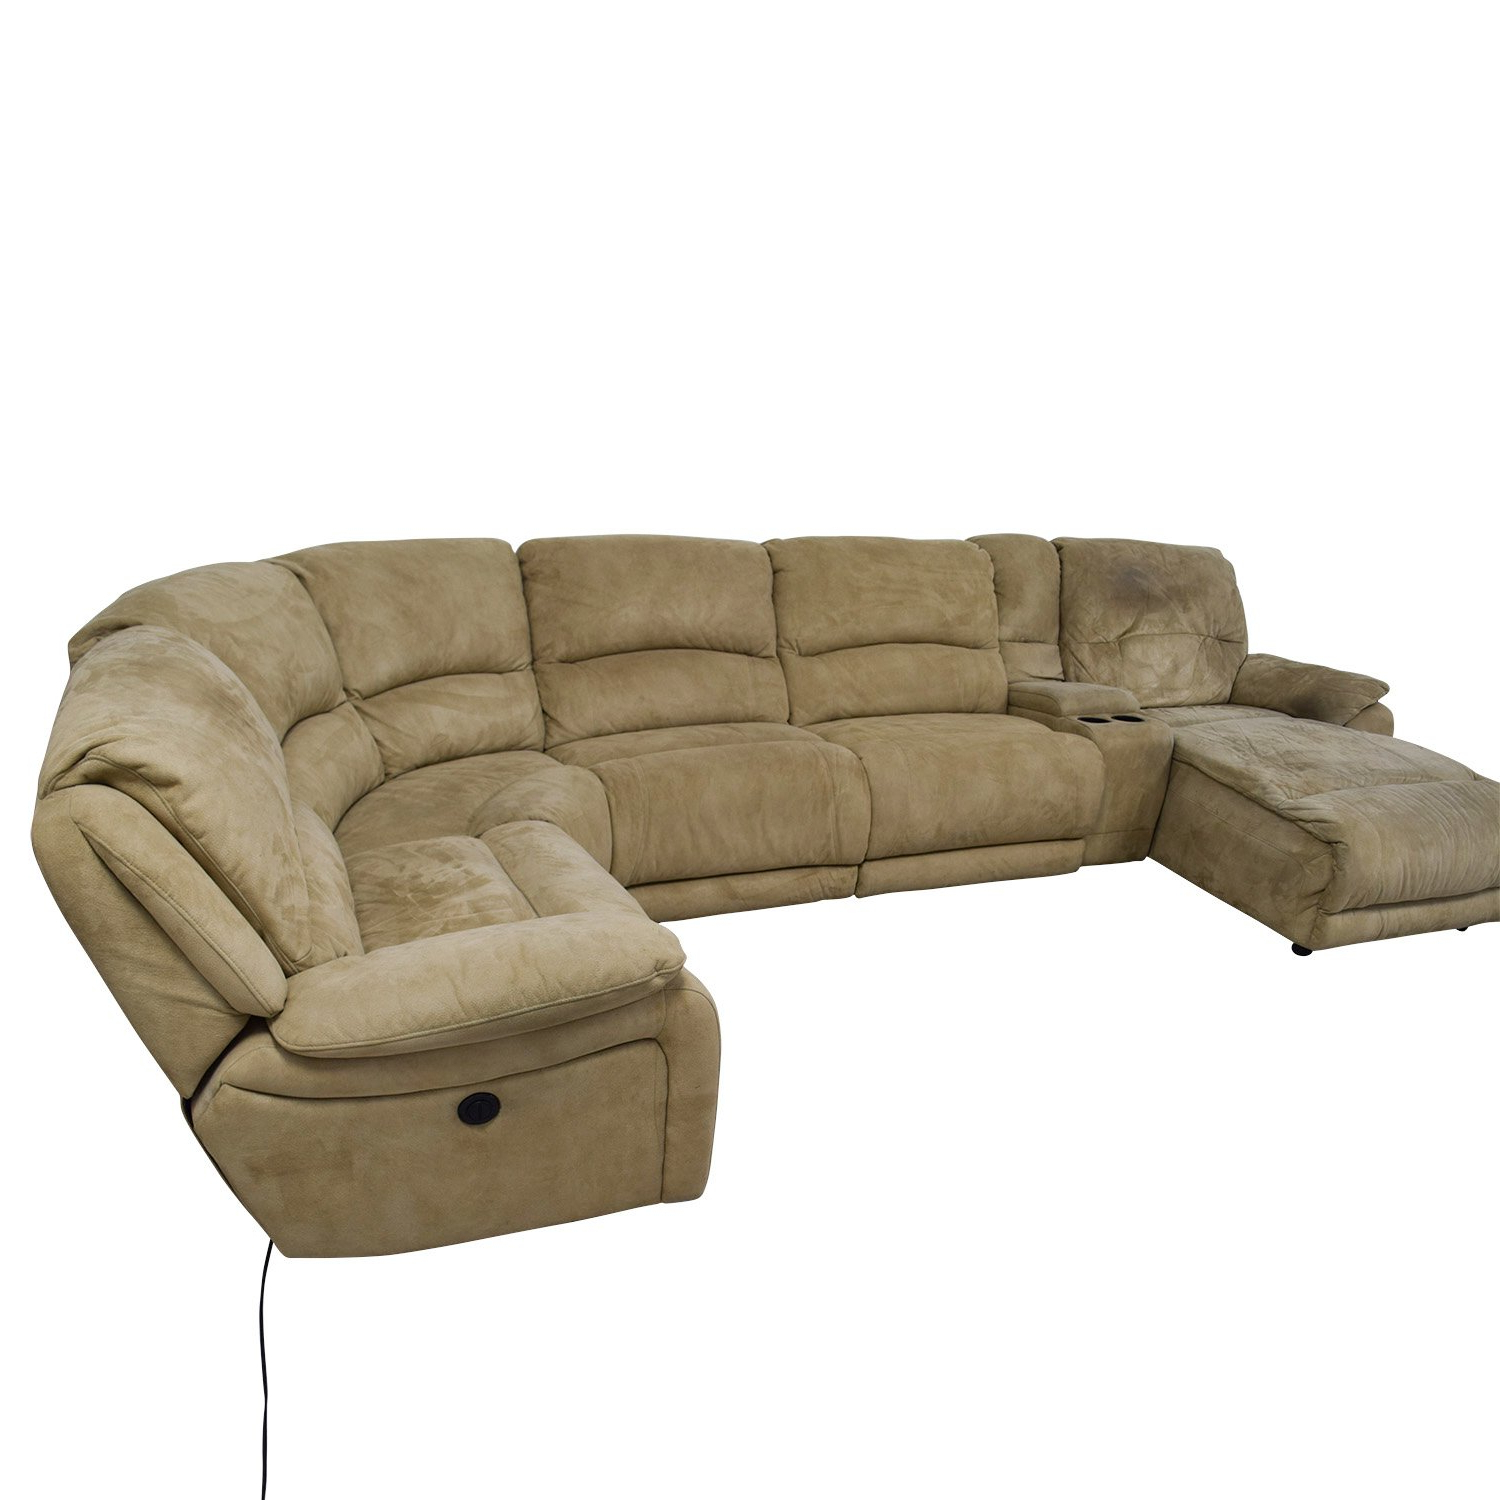 Fabulous 25 Power Reclining Sectional Sofa Favorite Regarding Most Recently Released Calder Grey 6 Piece Manual Reclining Sectionals (View 3 of 20)